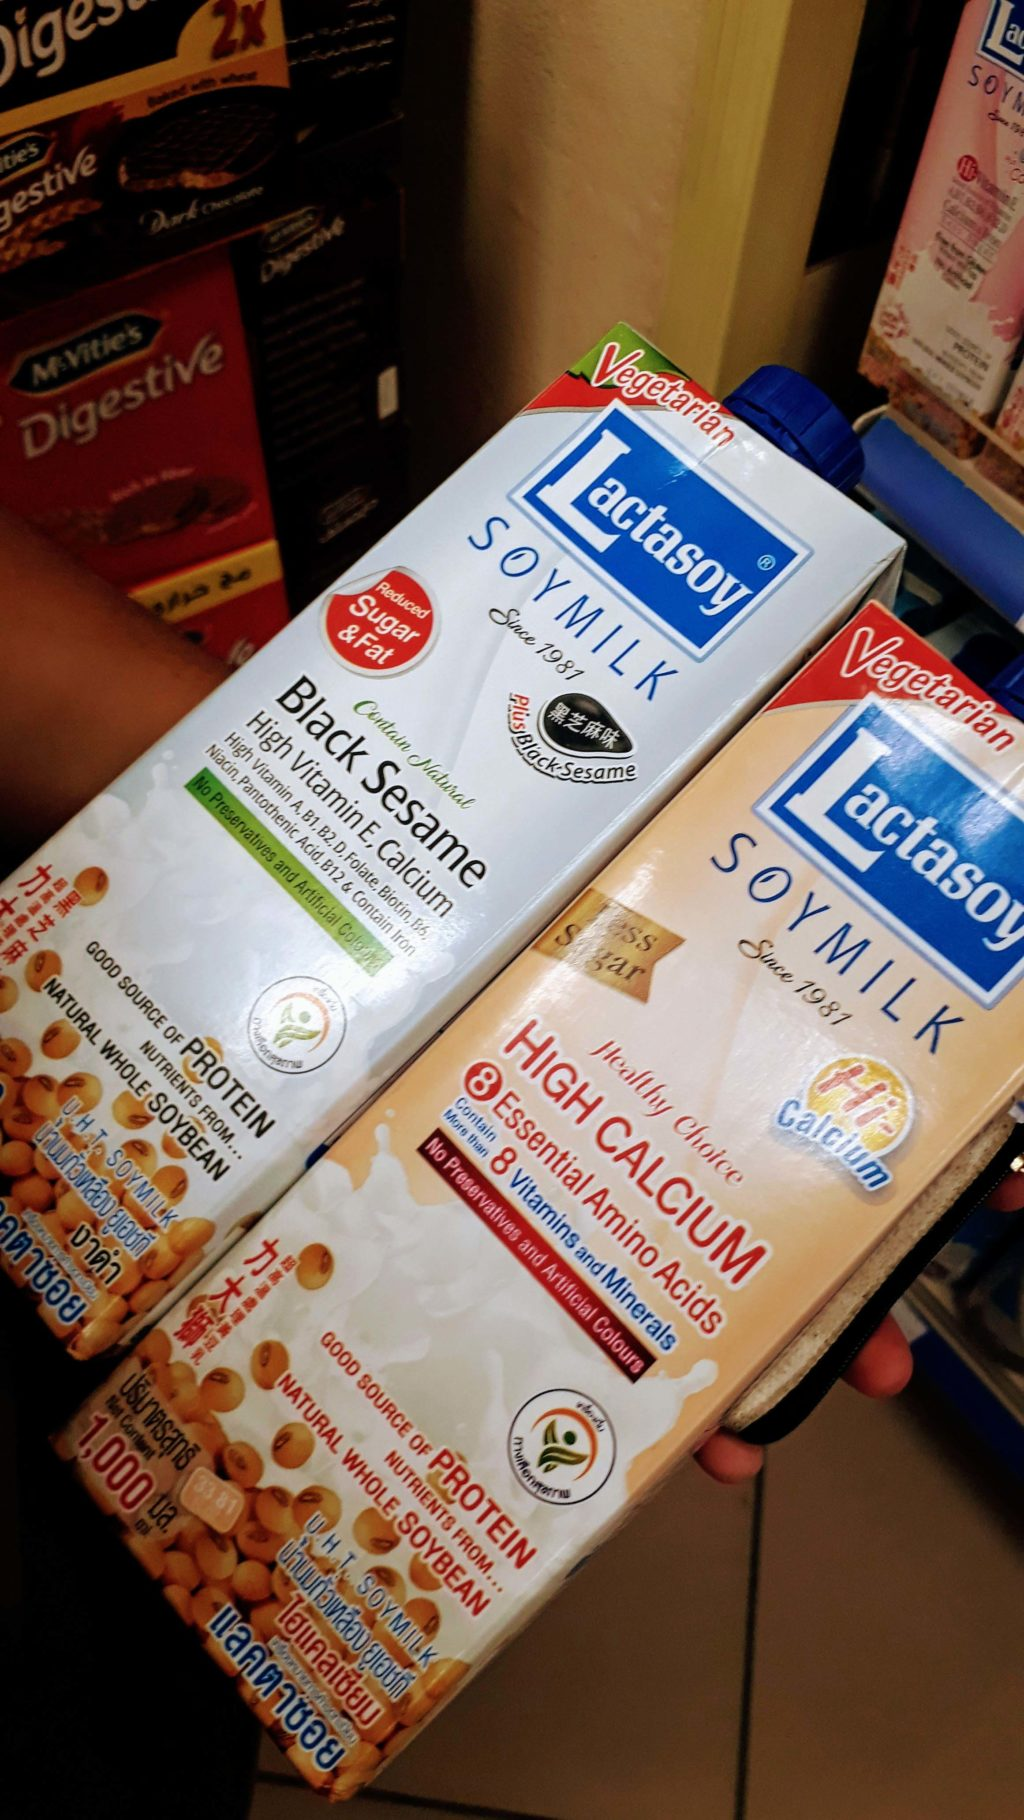 The two vegan soy milk varieties from Lactasoy